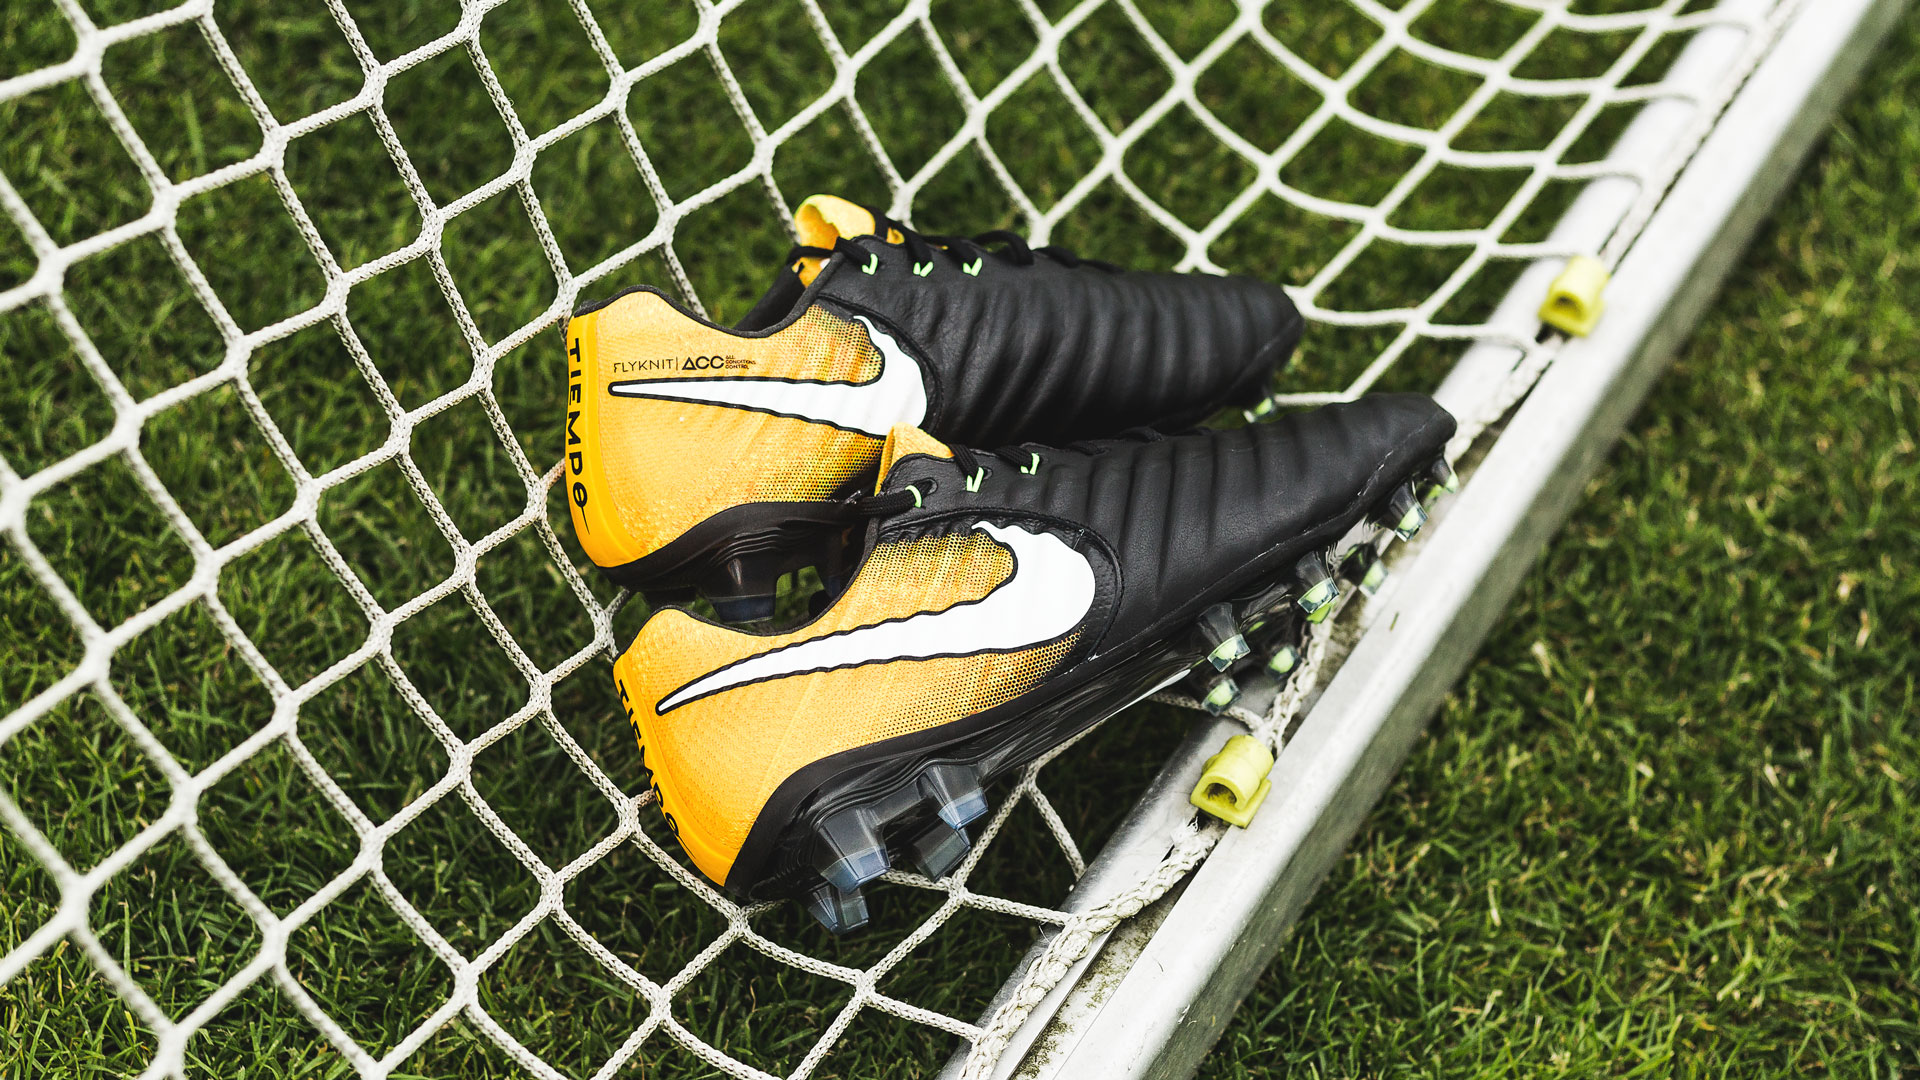 701b67ce2 Nike Tiempo Legend 7 launched